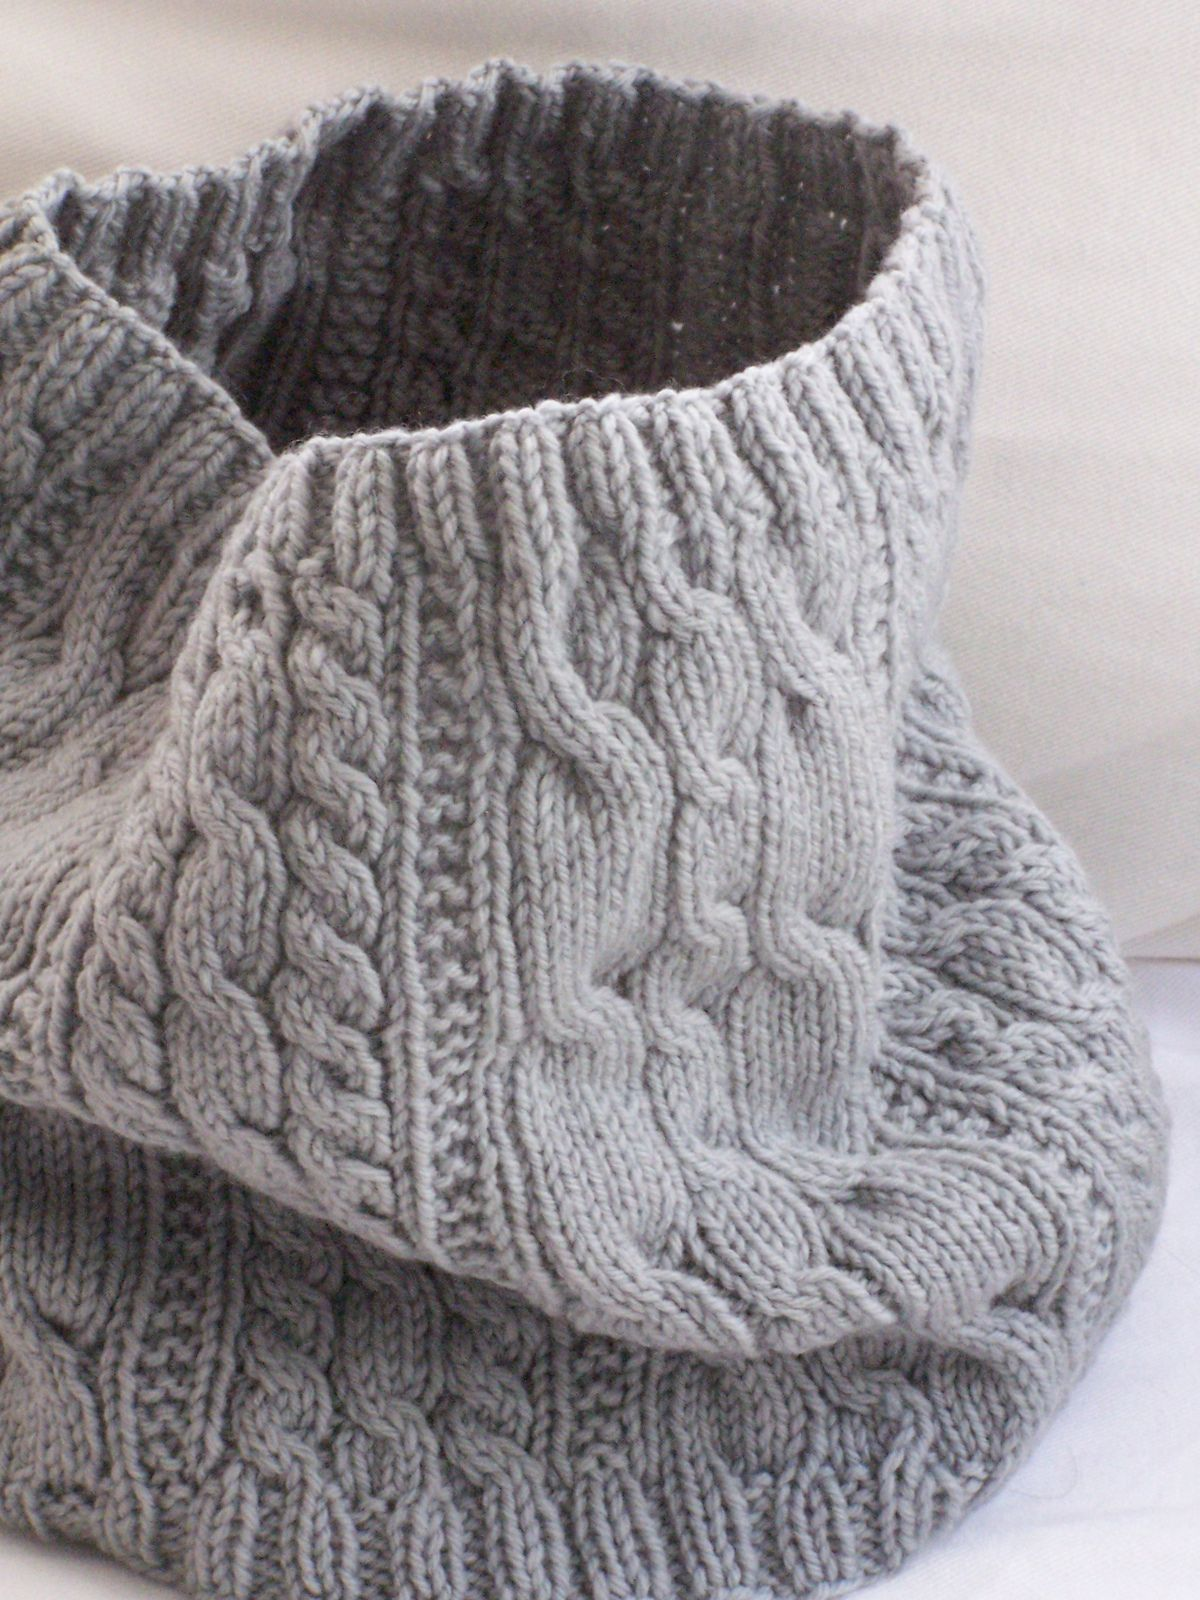 Cable-eazy Cowl pattern by Megan Delorme | Scarves, Knit cowl and Shawl